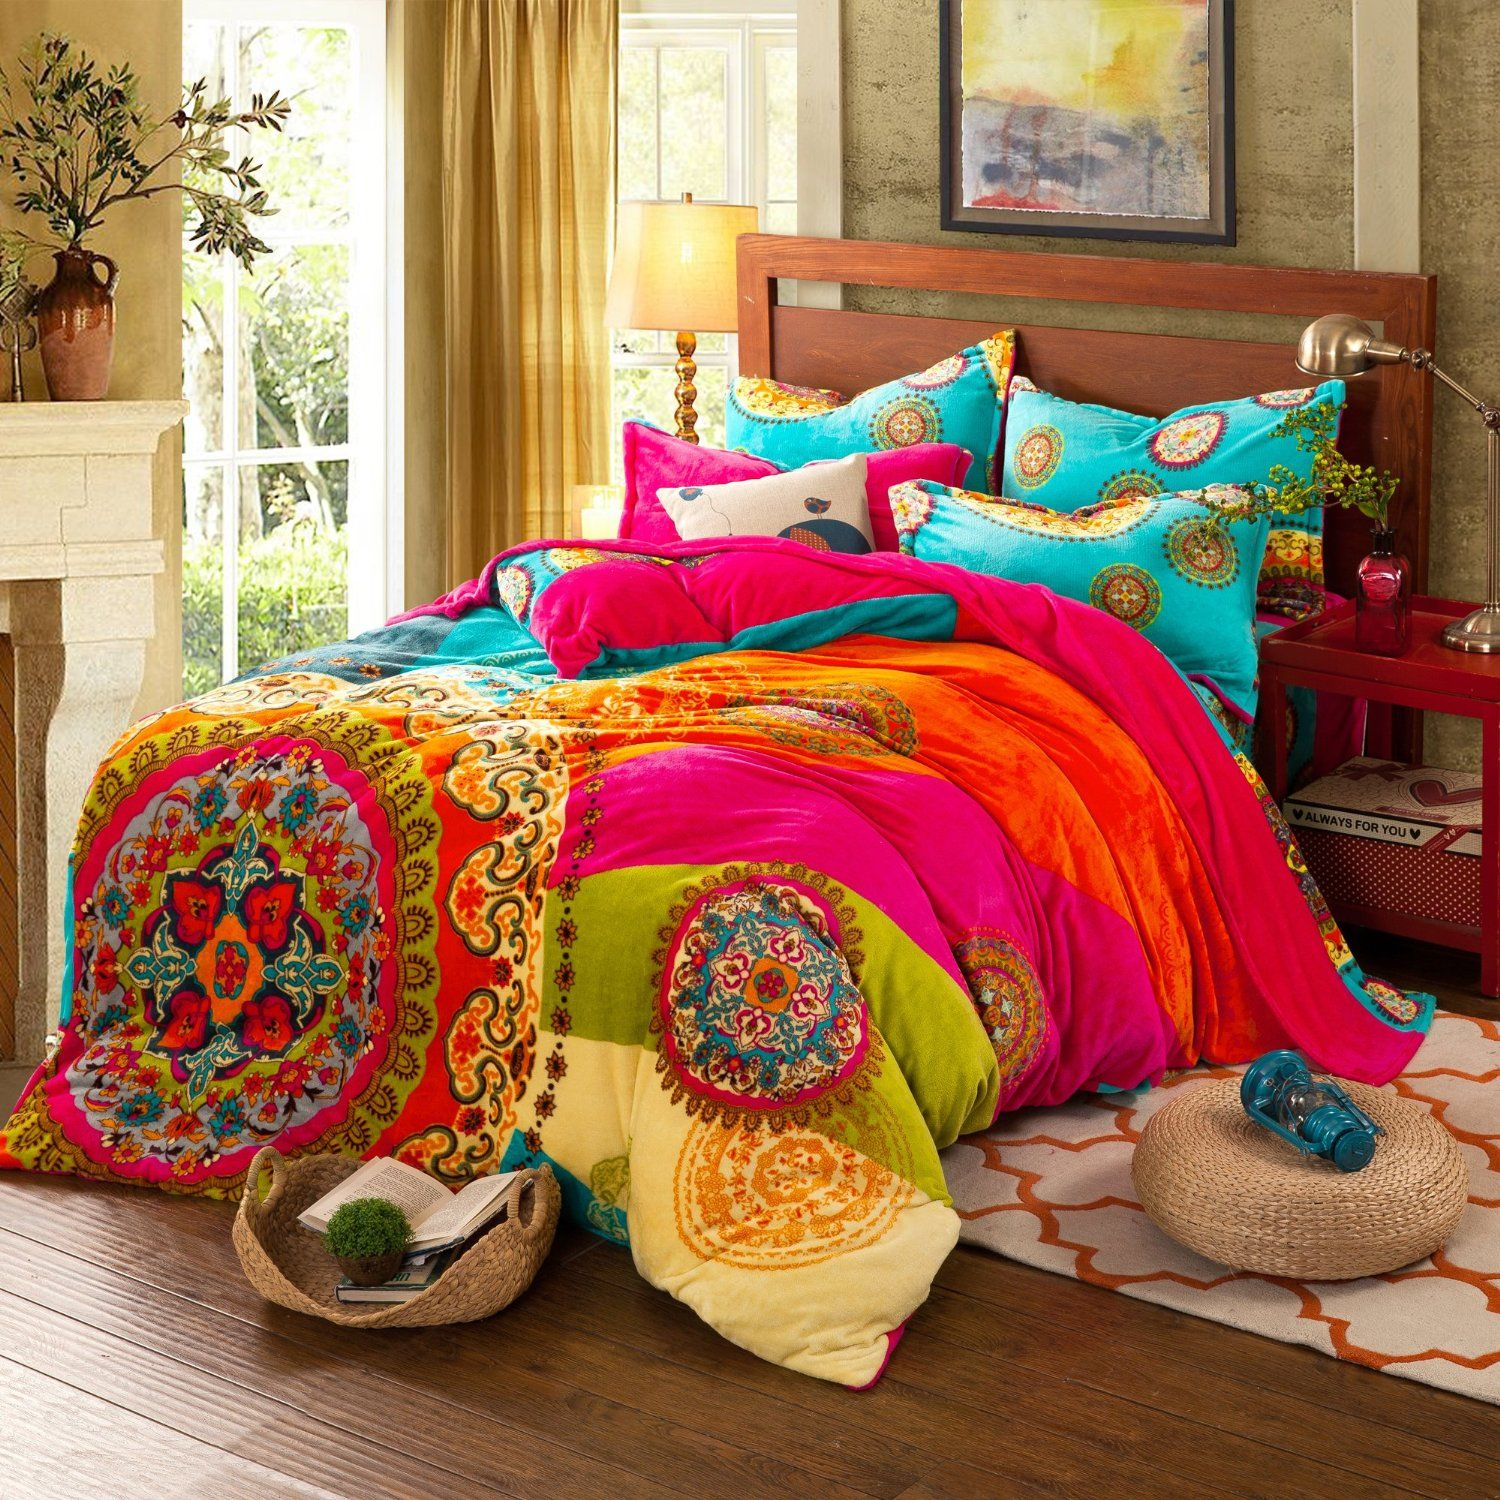 Best Amazon Com Paisley Bohemian Bedding For *D*Lt T96 Boho 400 x 300